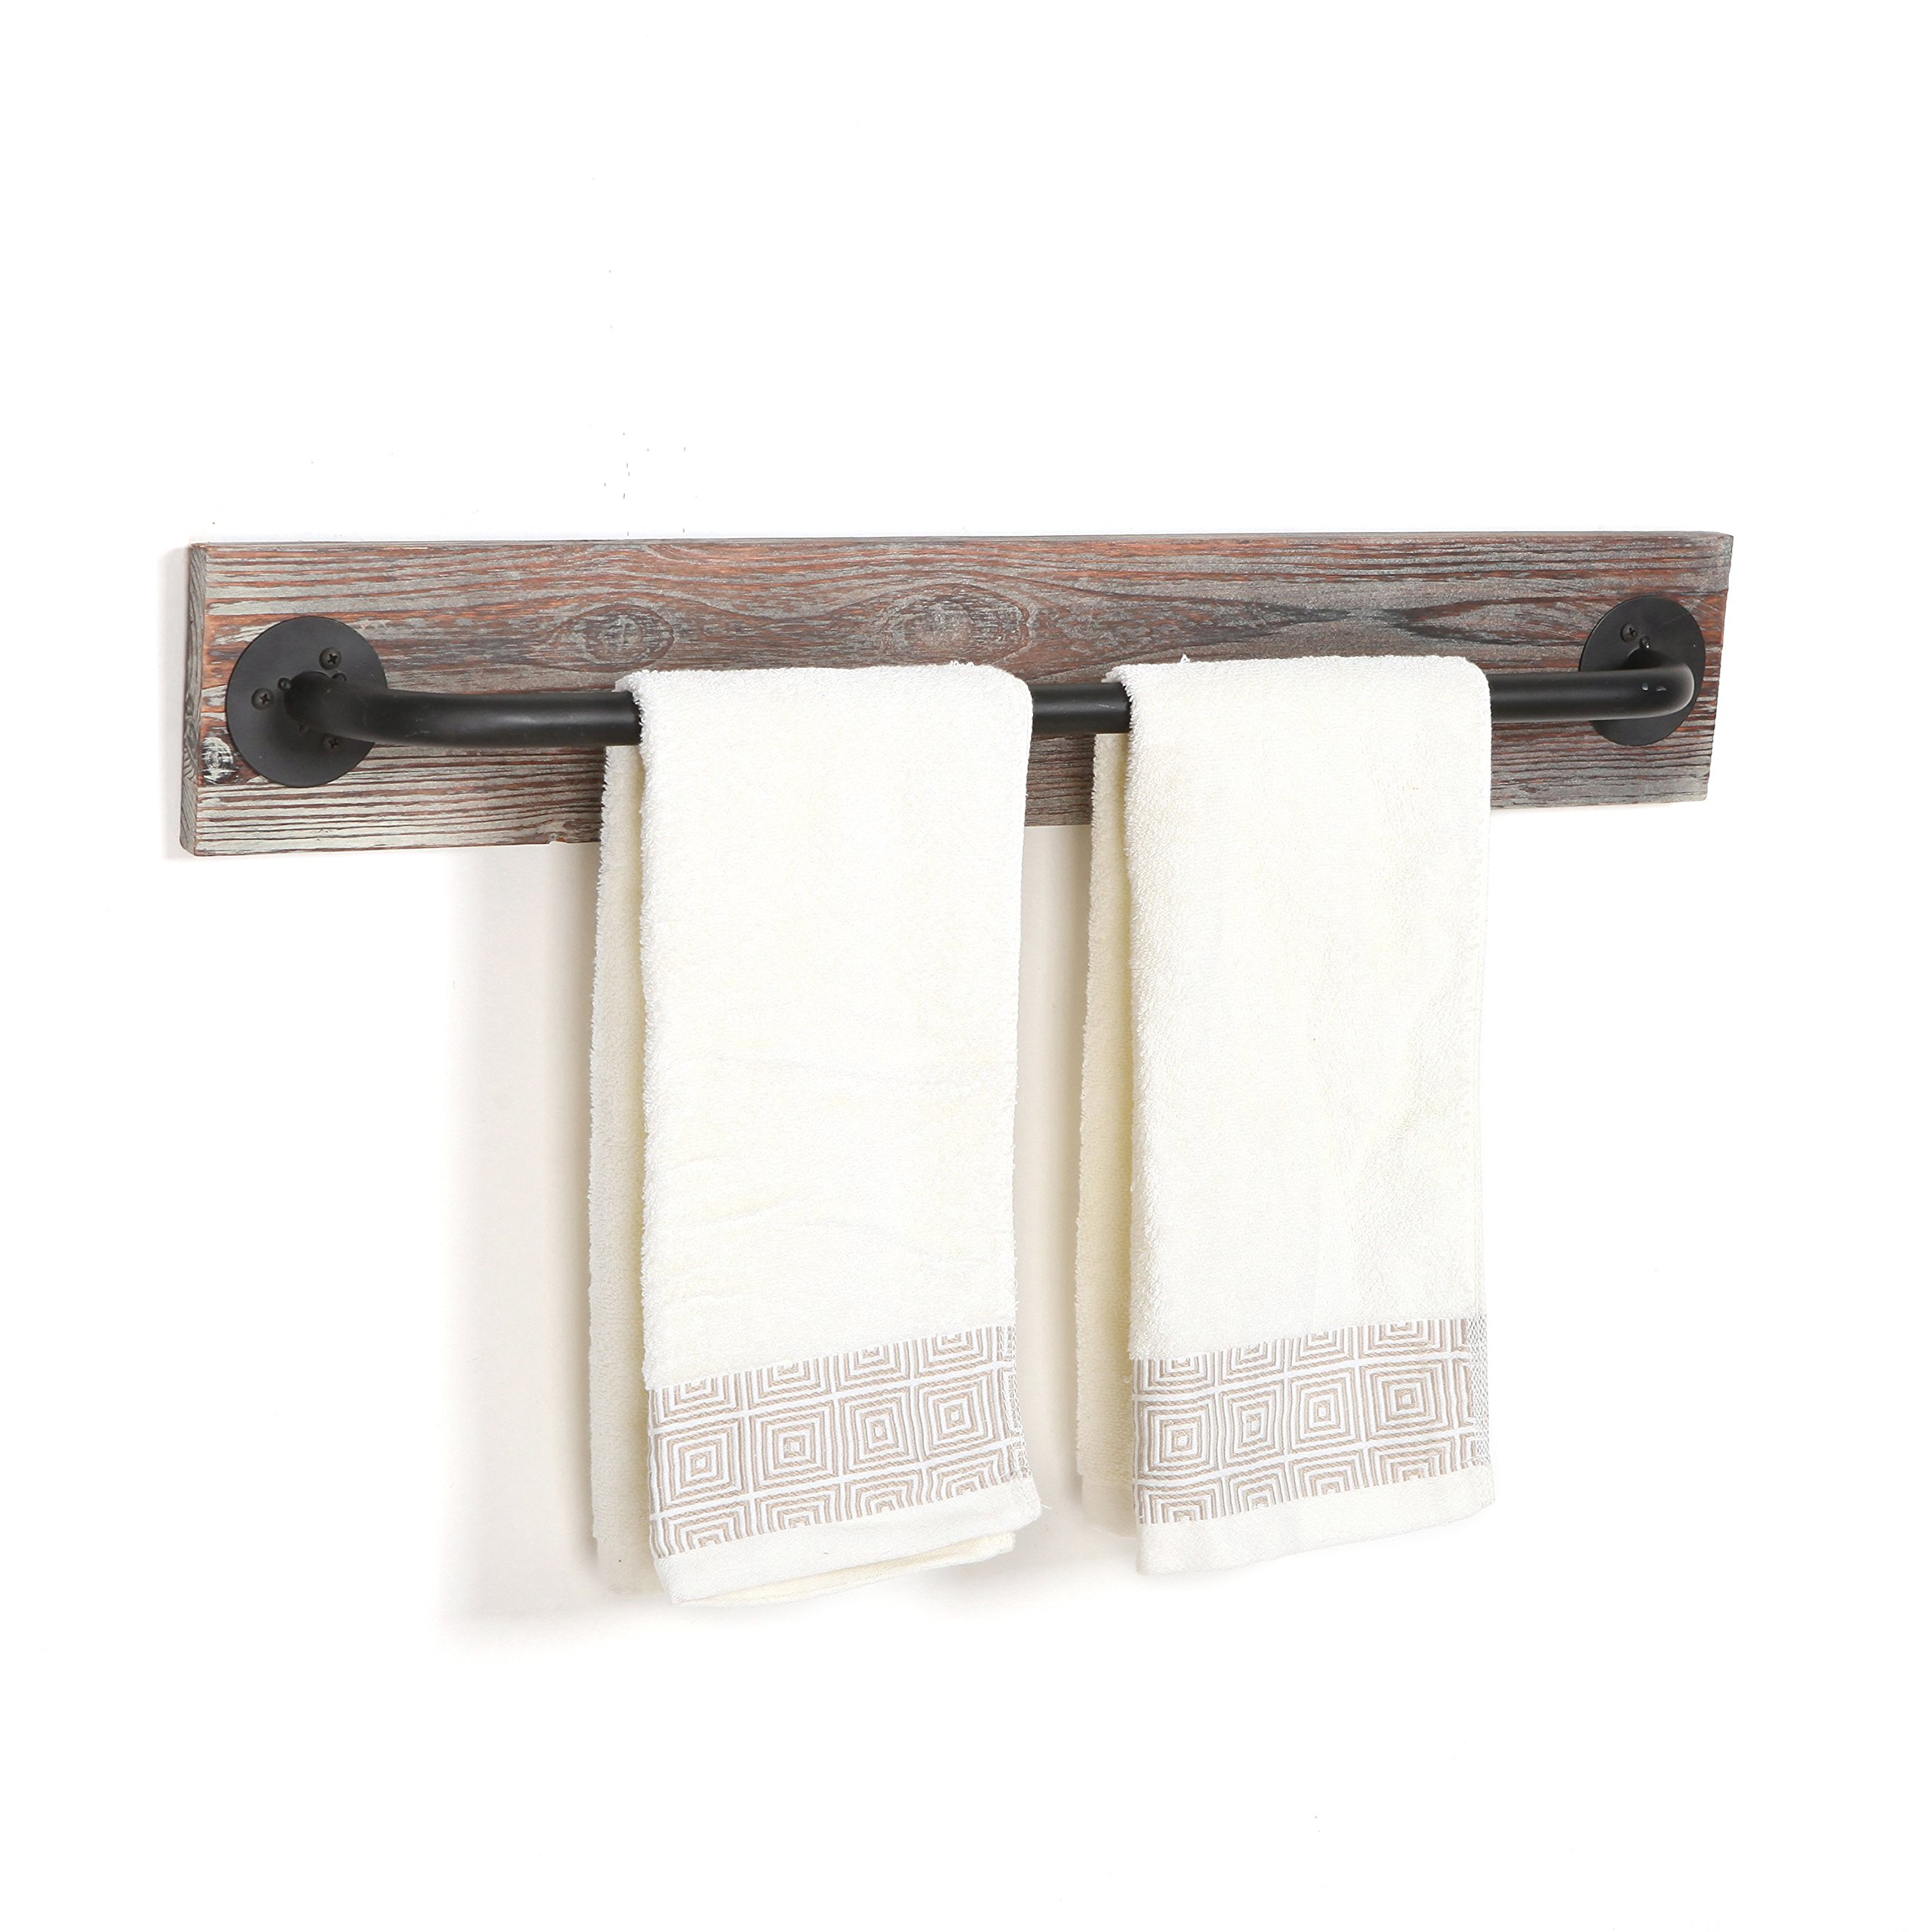 Rustic Hanging Towel Bar Wall Mounted Bathroom Hanger Holder Vintage ...